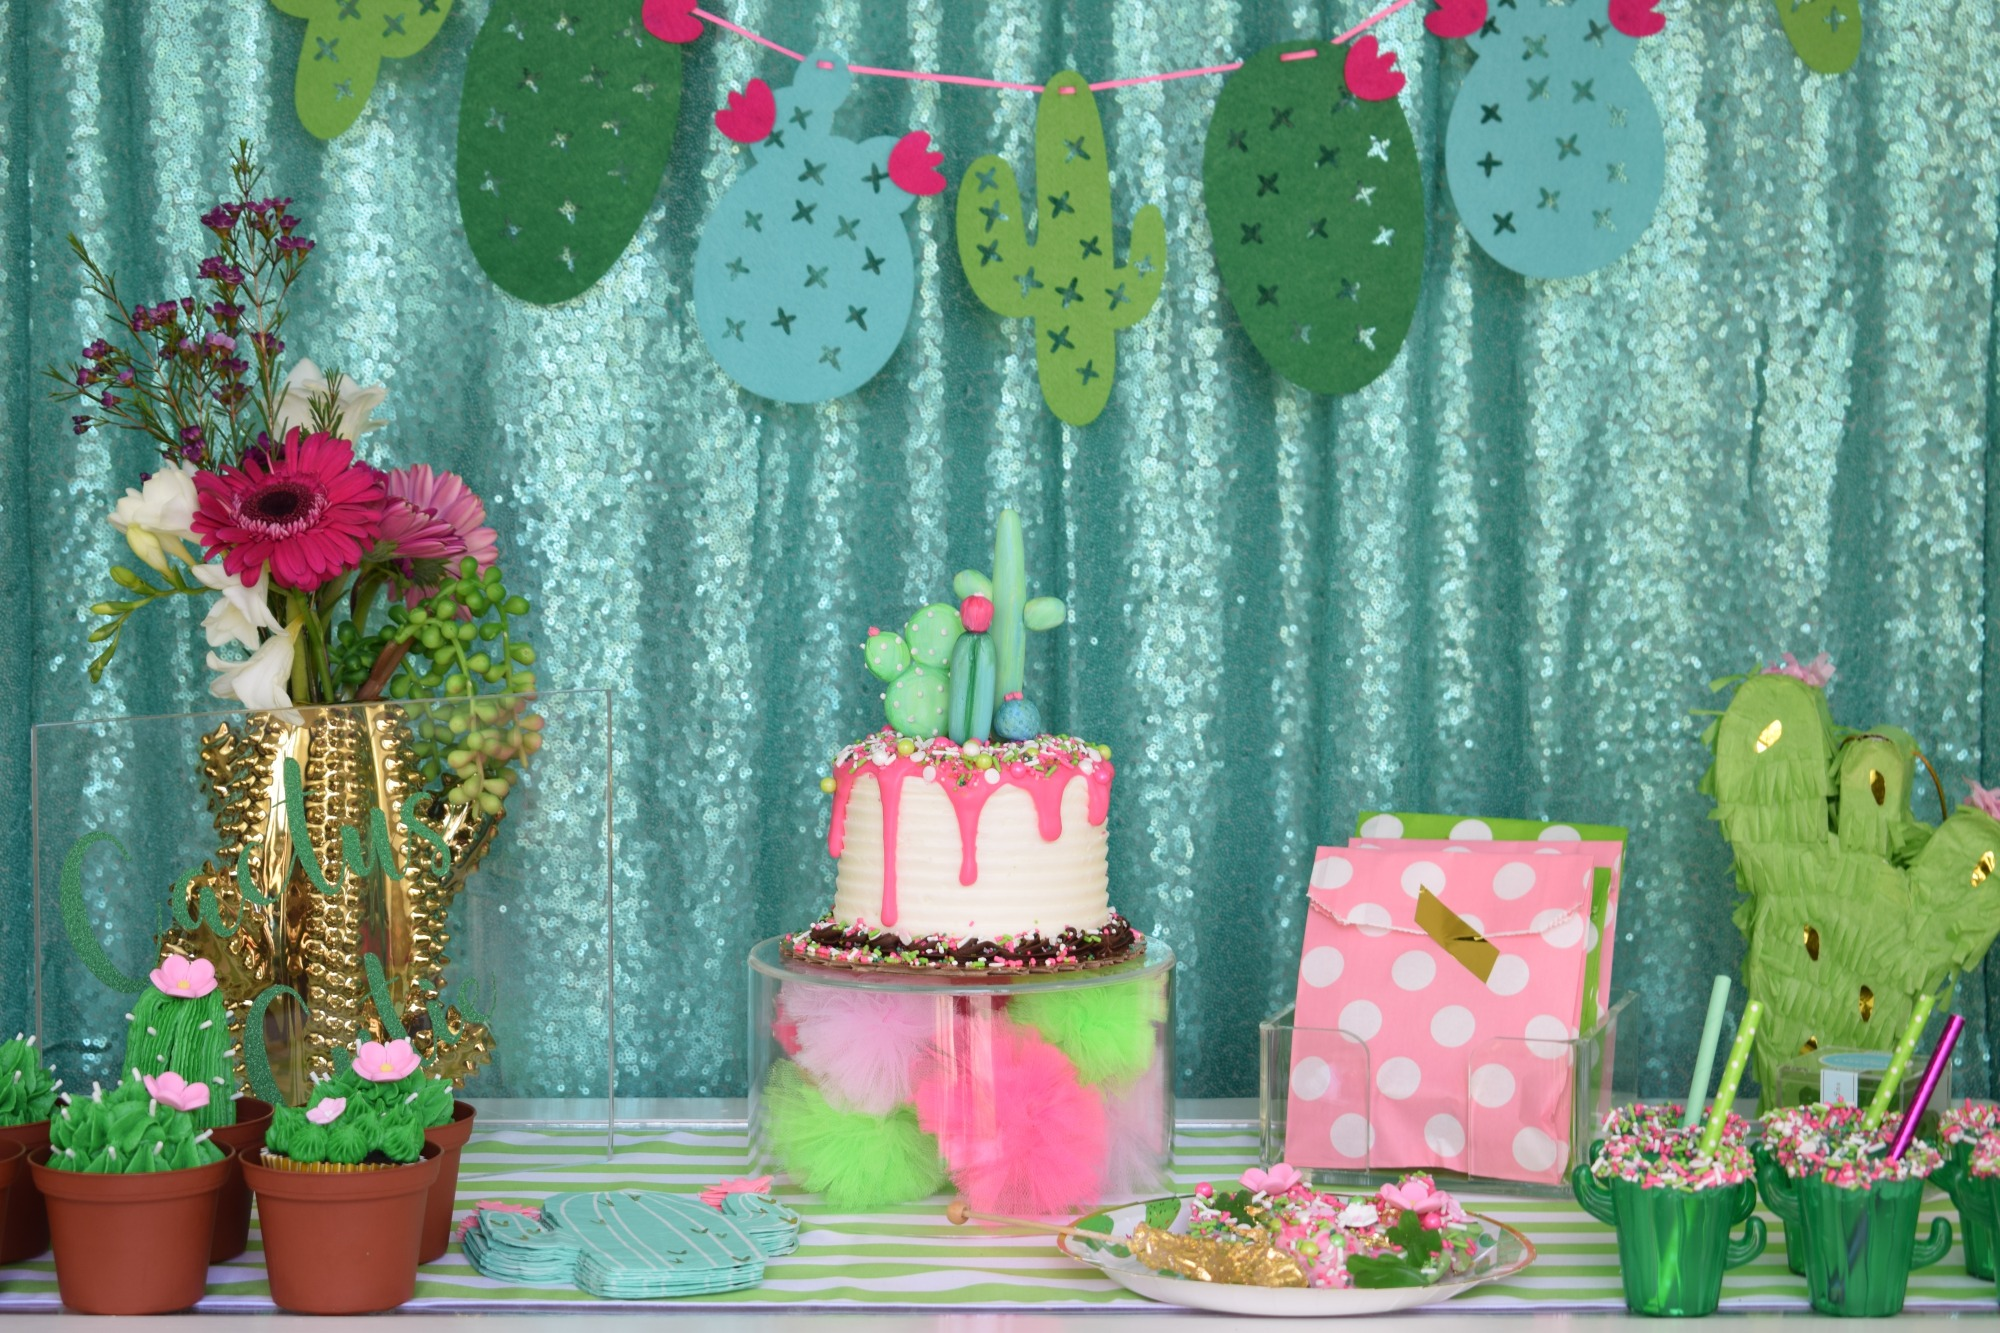 Cake and Dessert Table - Cactus Cutie Party Styled by A Party Made Perfect | Black Twine